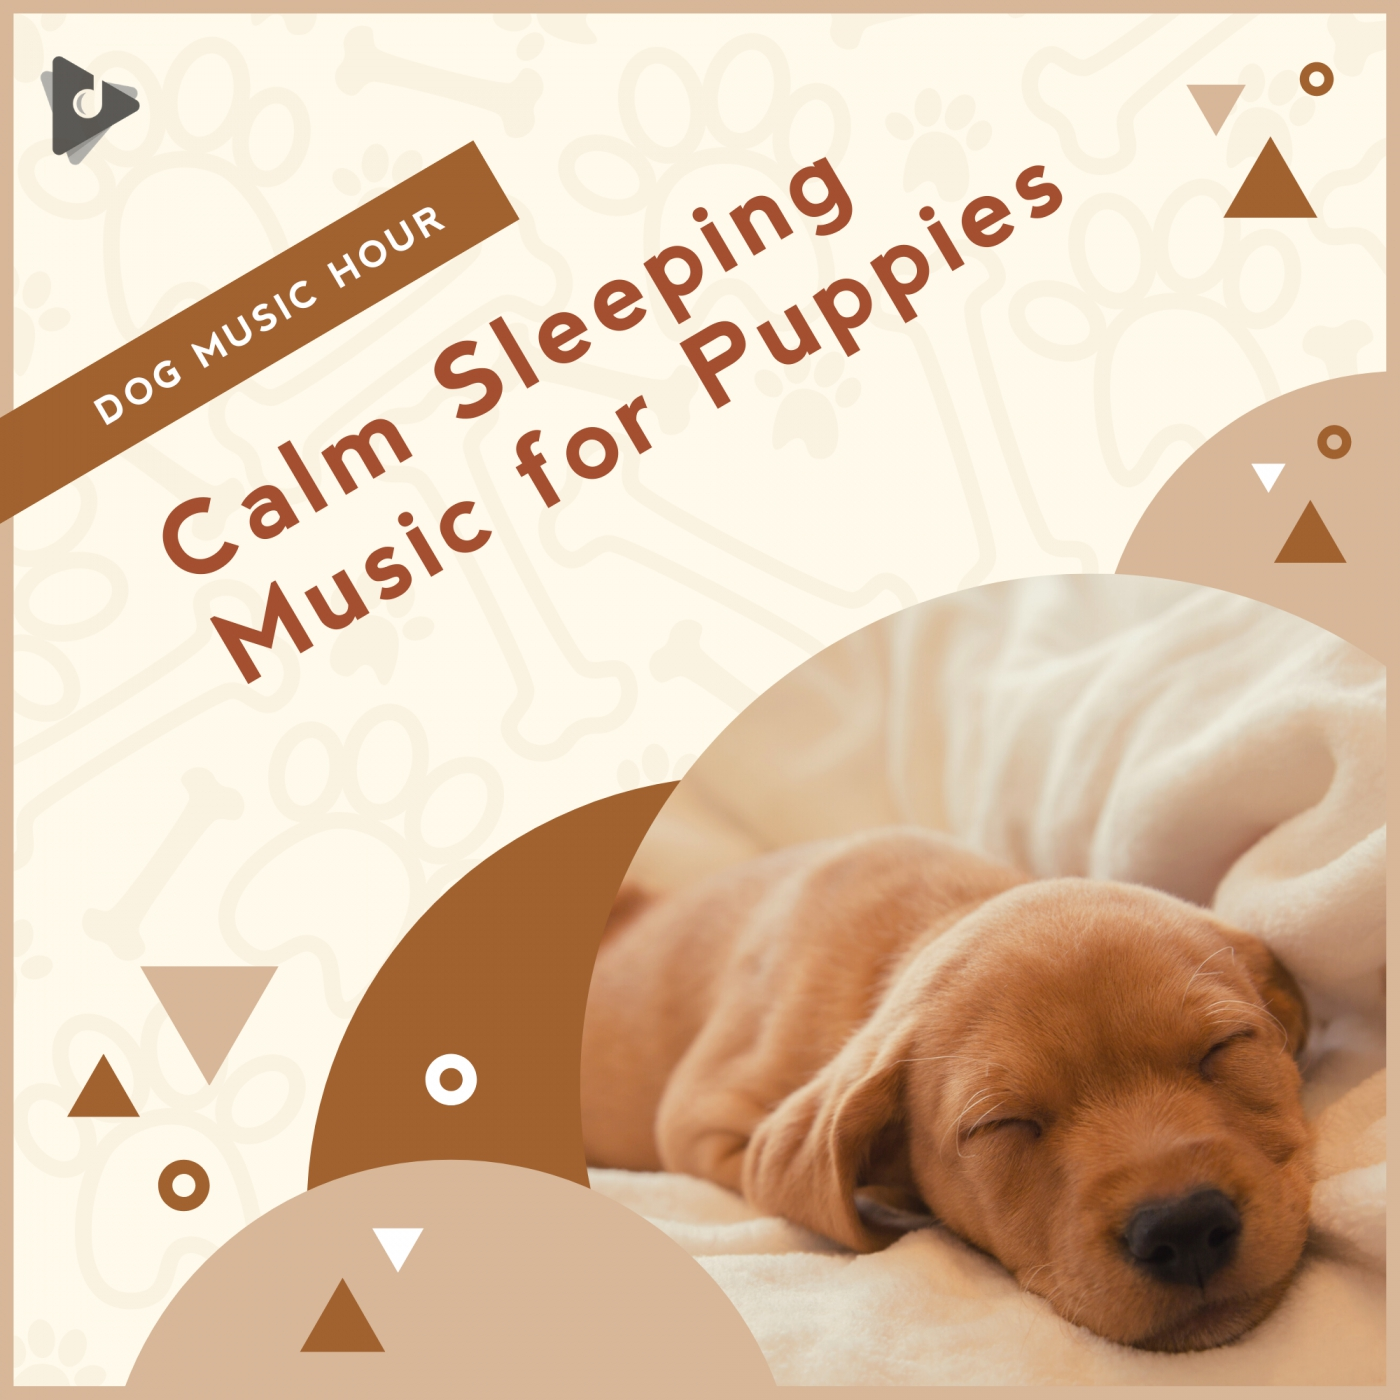 Calm Sleeping Music for Puppies